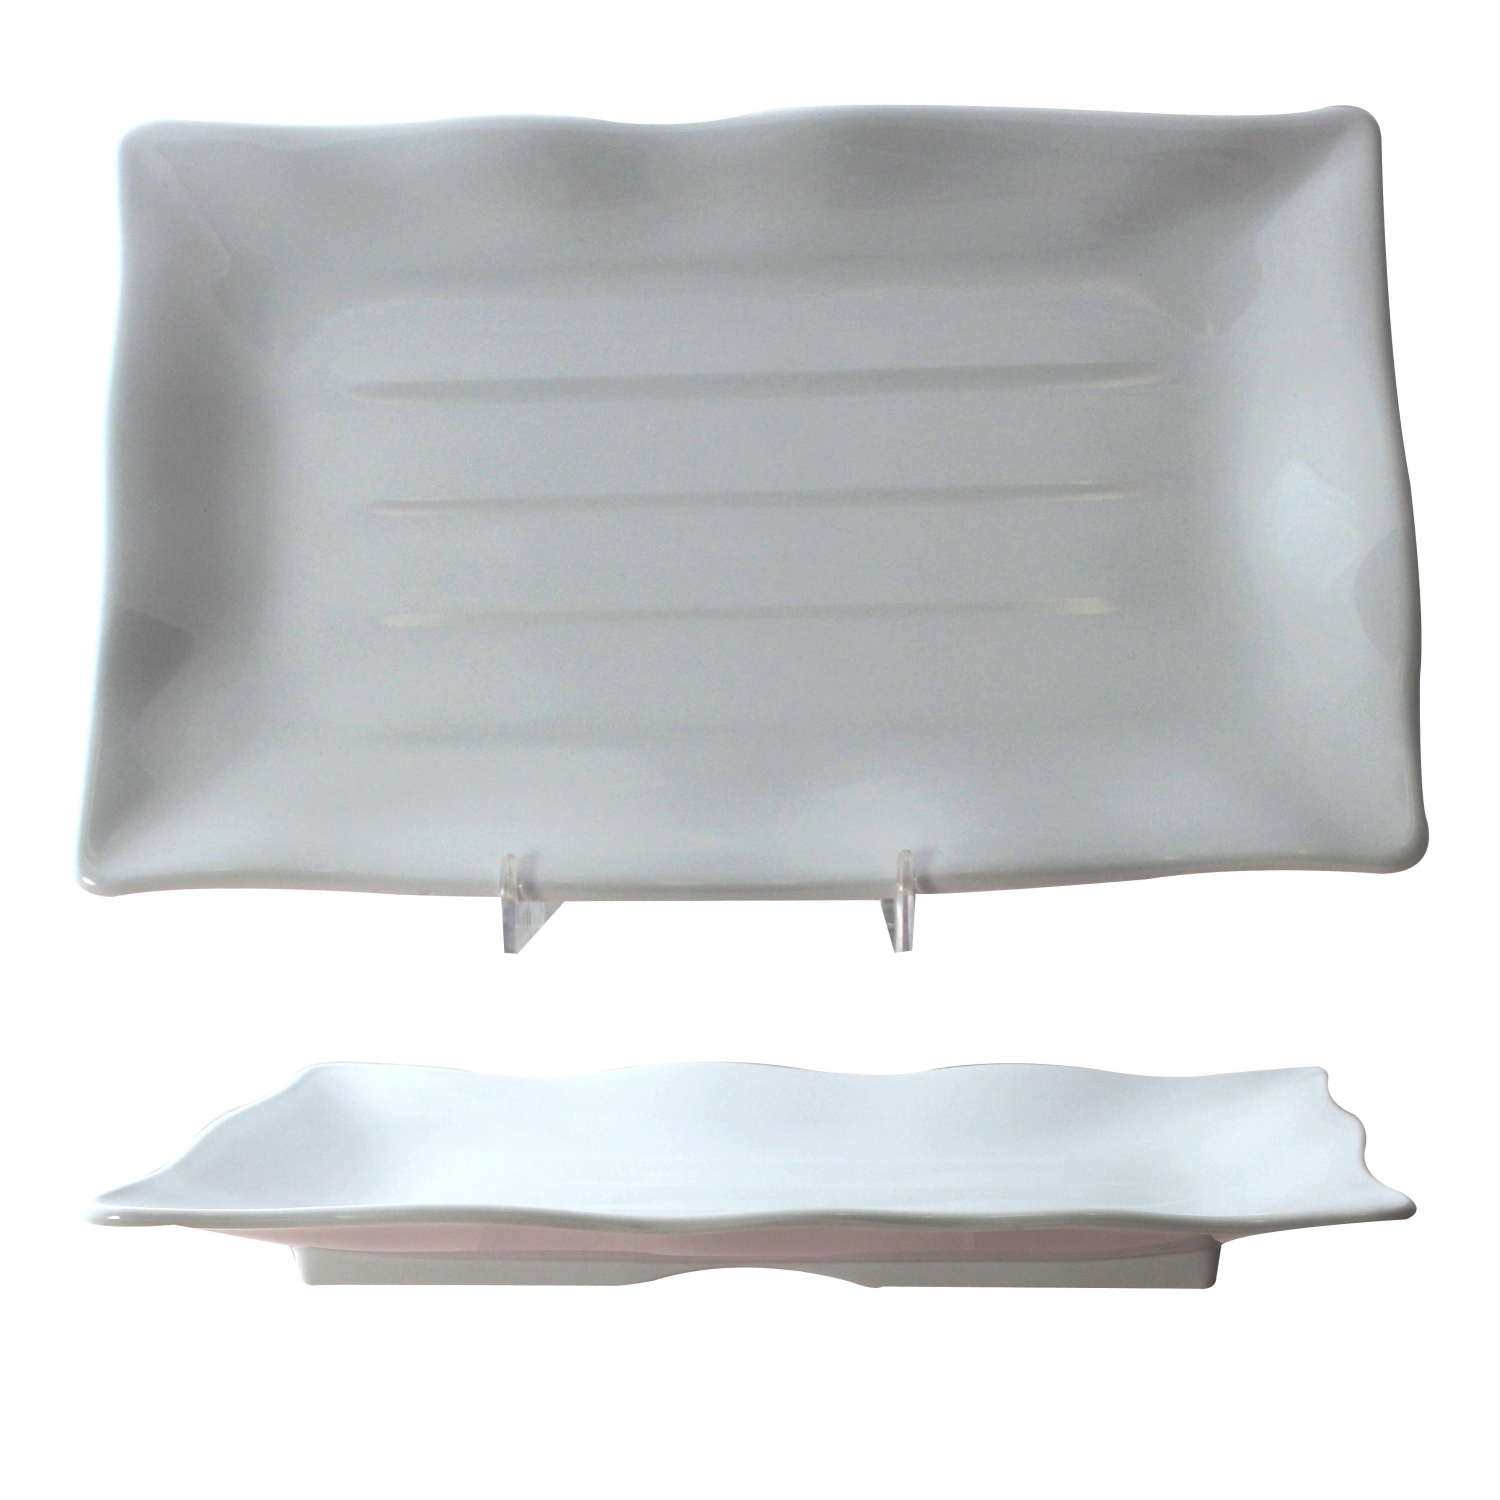 "Thunder Group 24140WT Classic White Melamine Rectangular Wave Plate 13-1/2"" x 9-1/8"" - 1 doz."